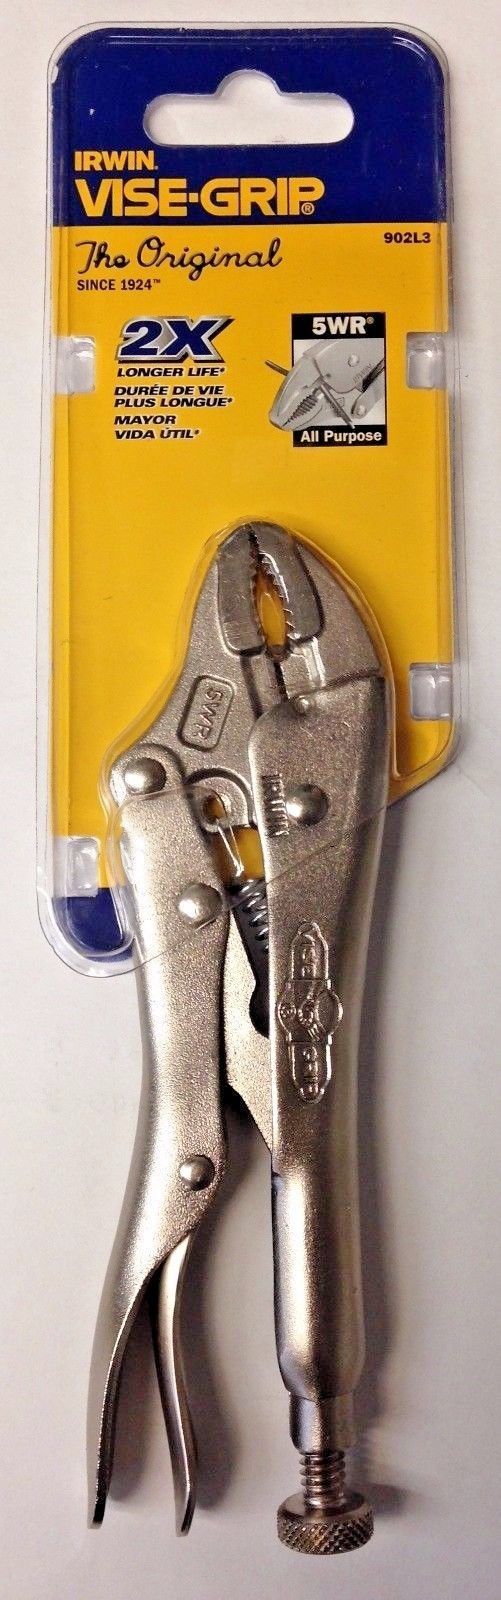 Irwin Vise-Grip 5WR All Purpose Locking Pliers 902L3 Carded